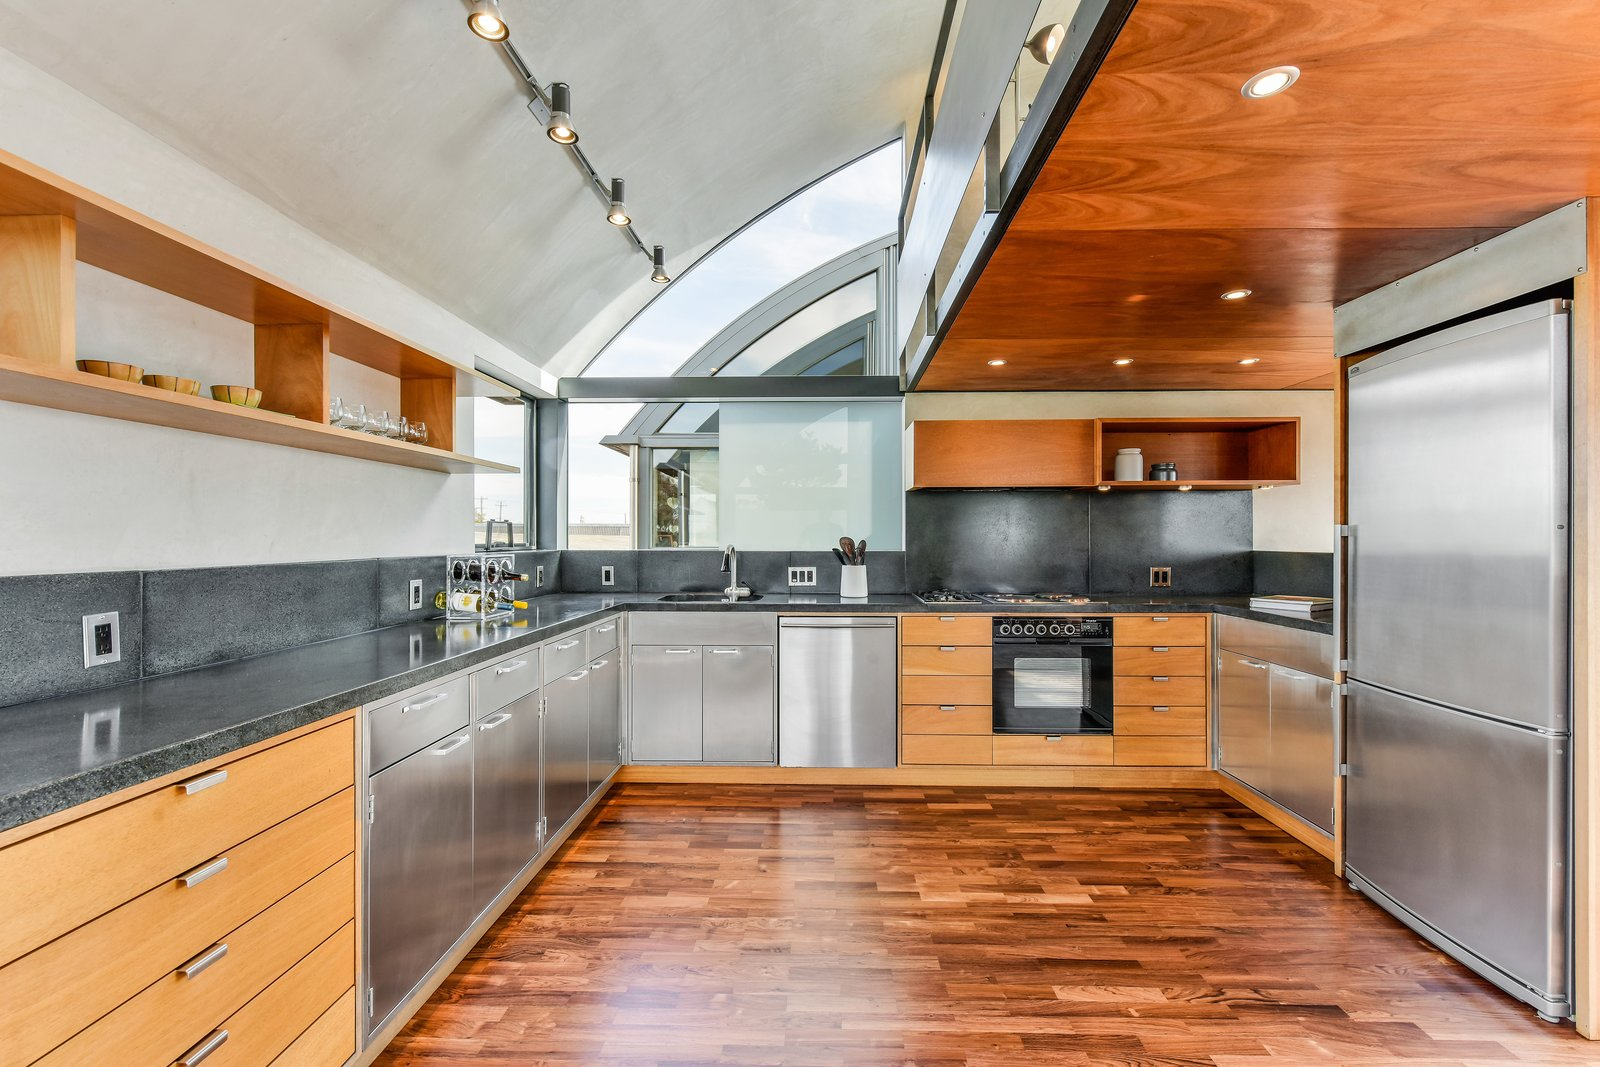 Kitchen, Medium Hardwood, Concrete, Wood, Concrete, Track, Ceiling, Refrigerator, Wall Oven, Range, Range Hood, Cooktops, Dishwasher, and Drop In Level 3 kitchen  Best Kitchen Concrete Cooktops Ceiling Refrigerator Dishwasher Photos from The Rempel Temple